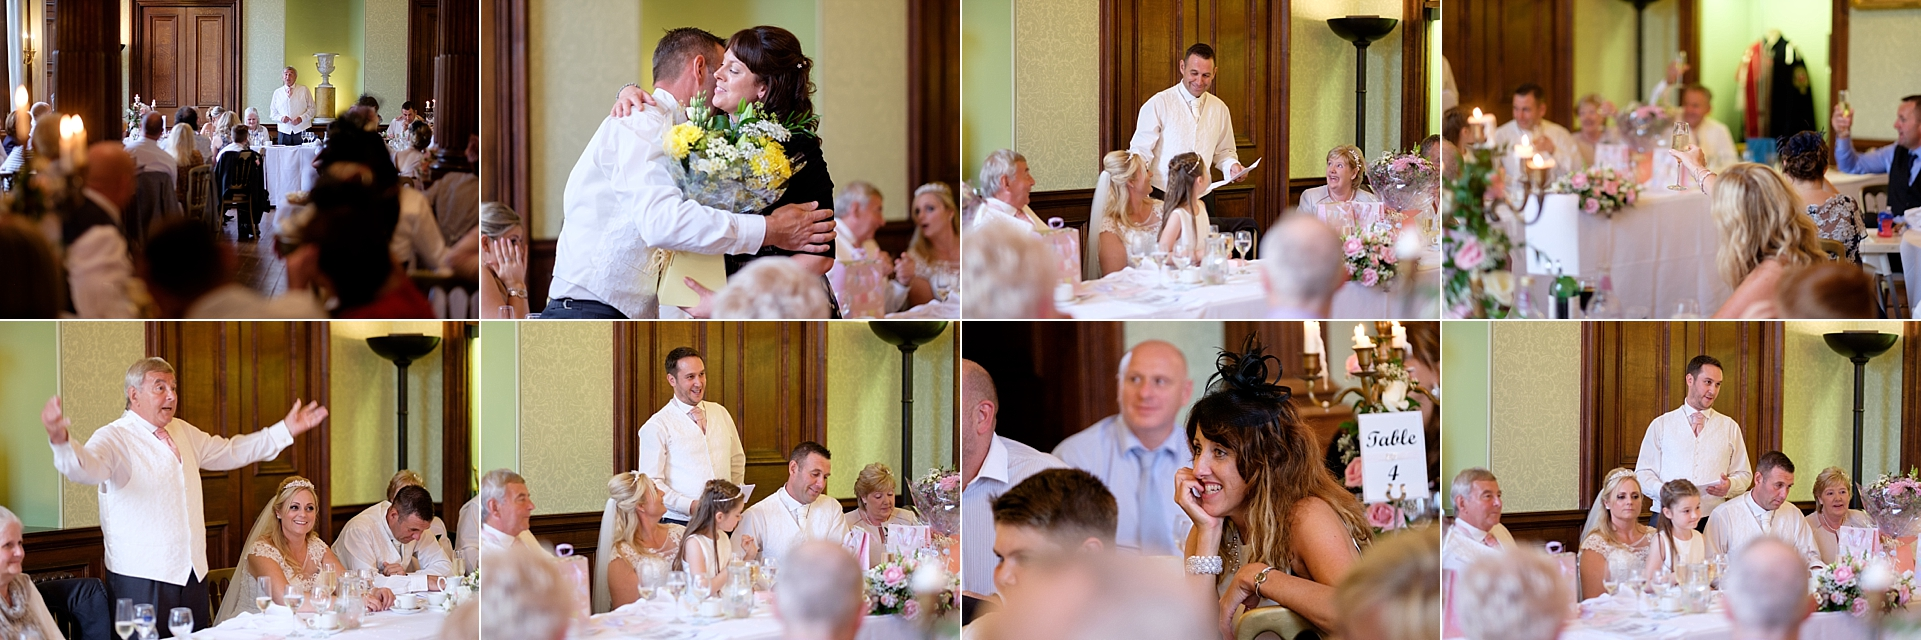 wedding photographer sandon hall stoke 12.jpg